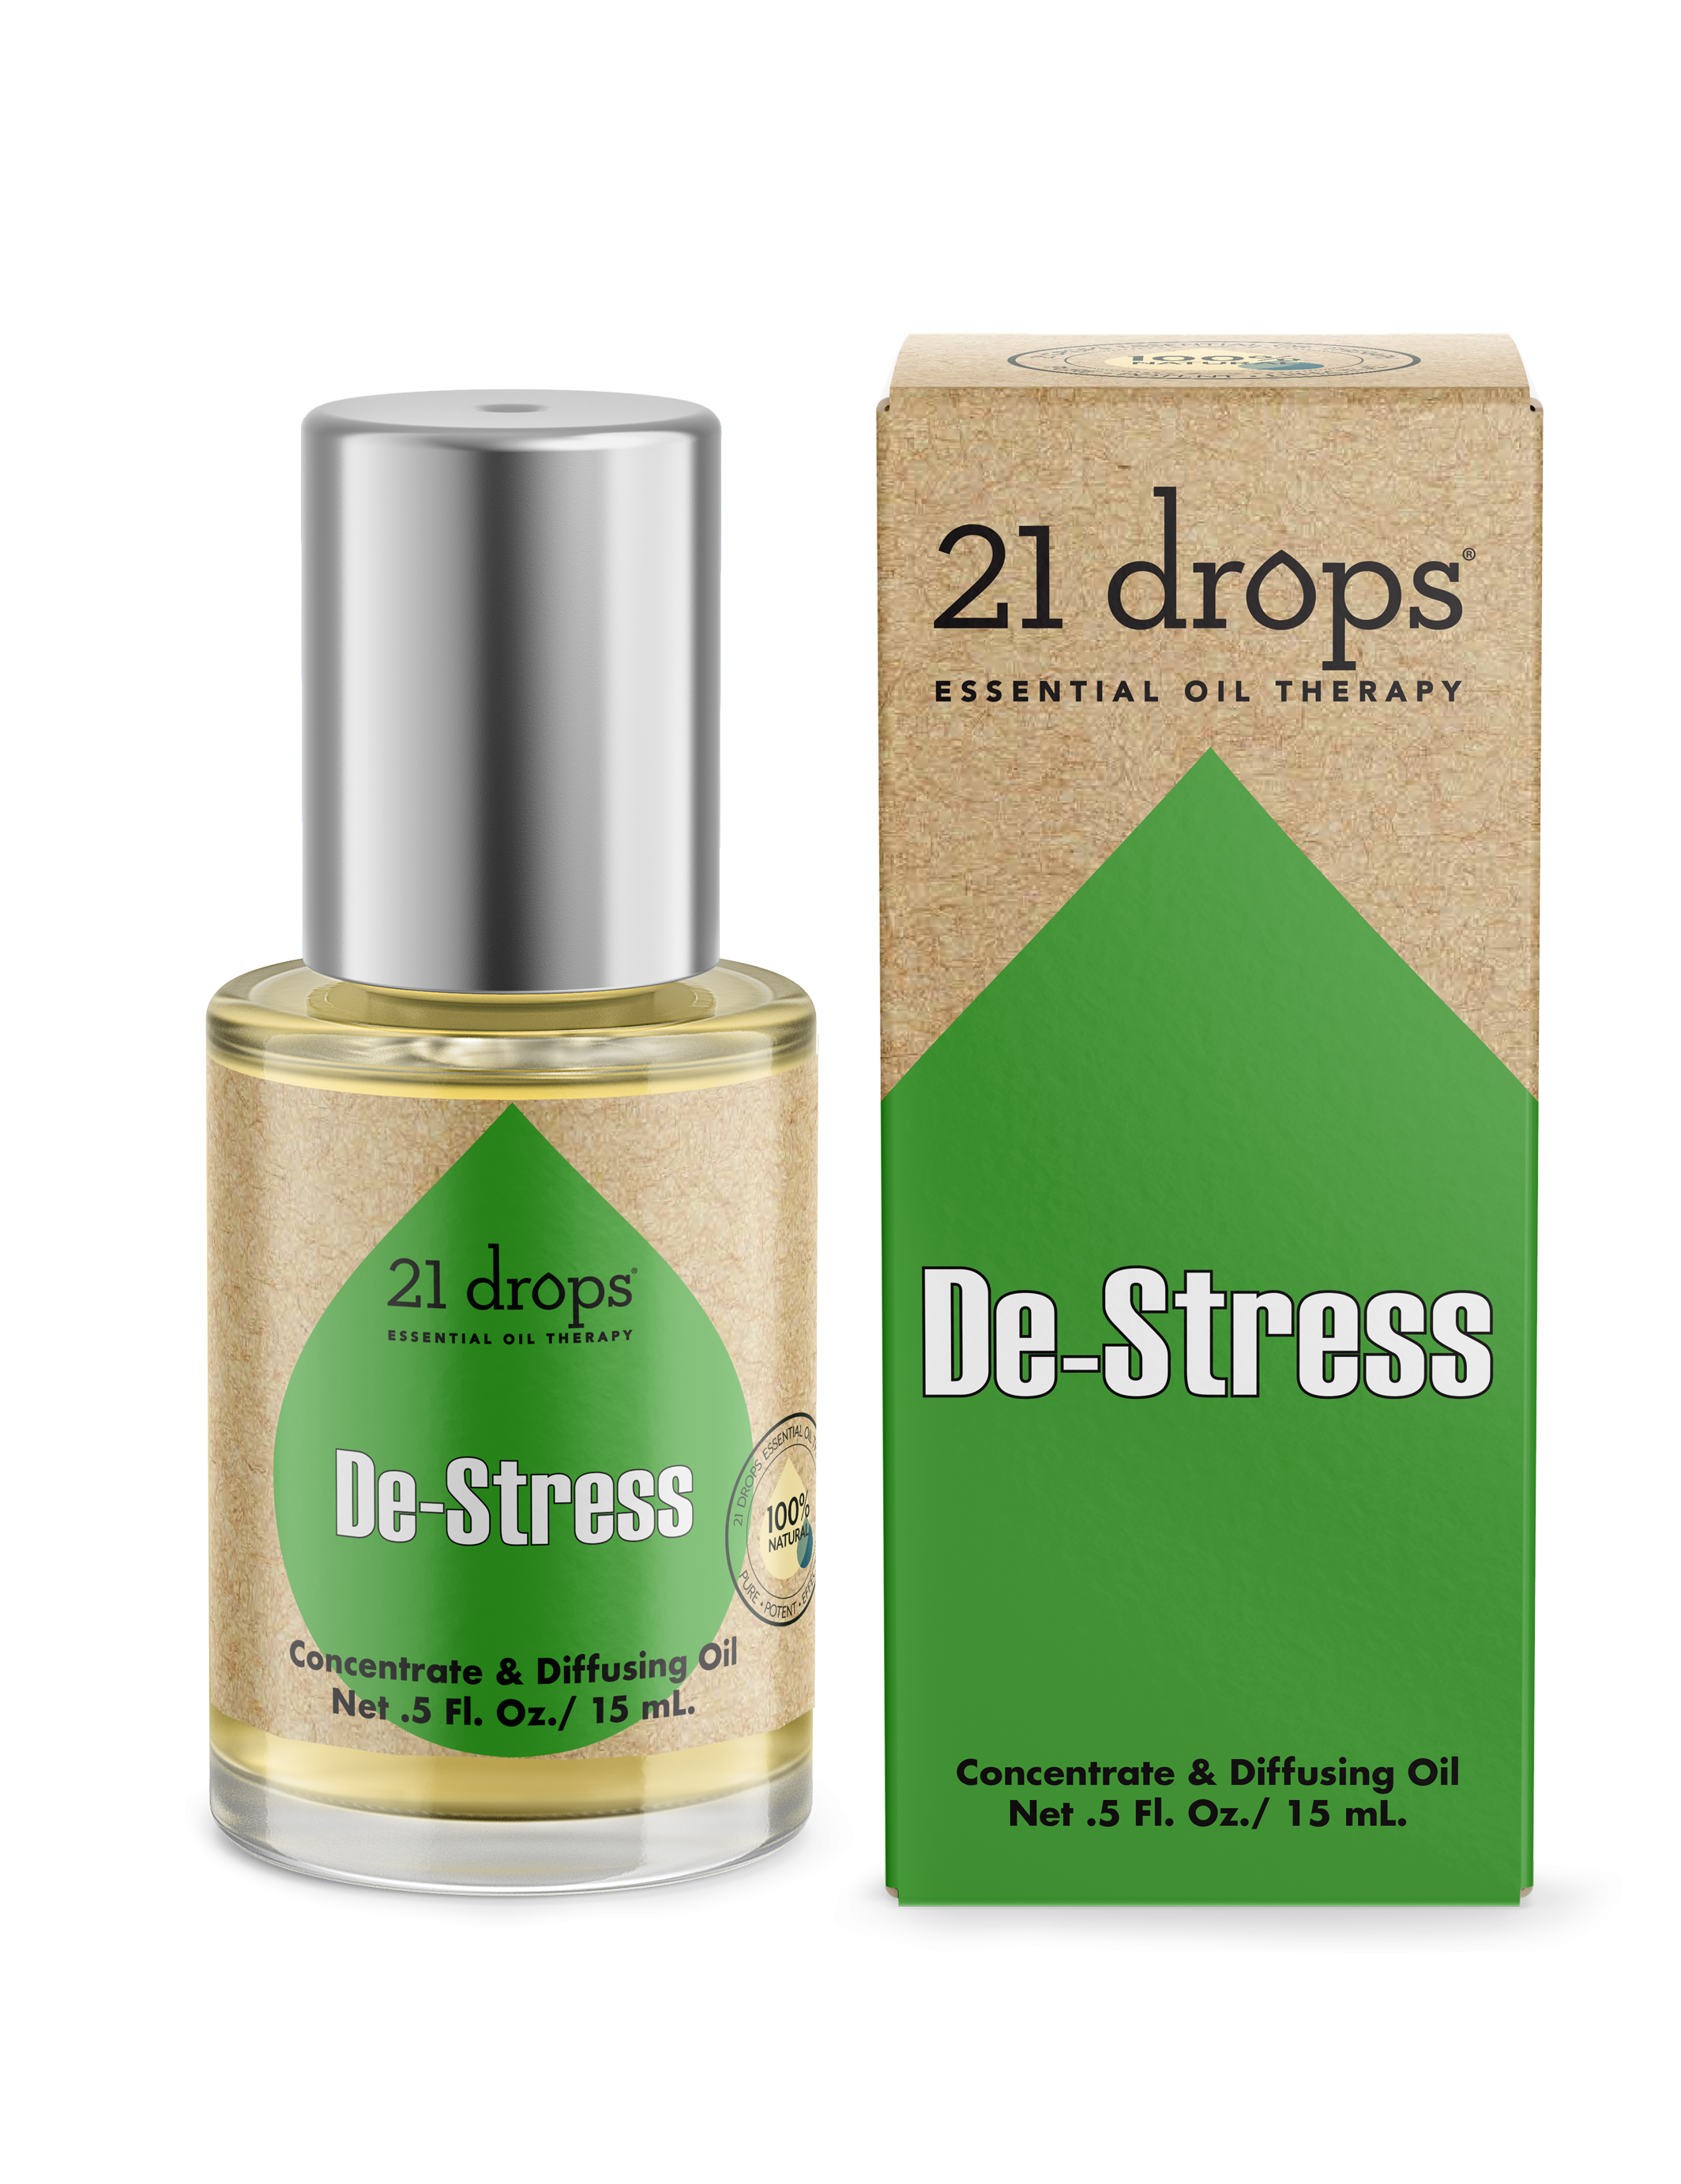 21 drops De-Stress essential oil aromatherapy concentrate and diffusing oil